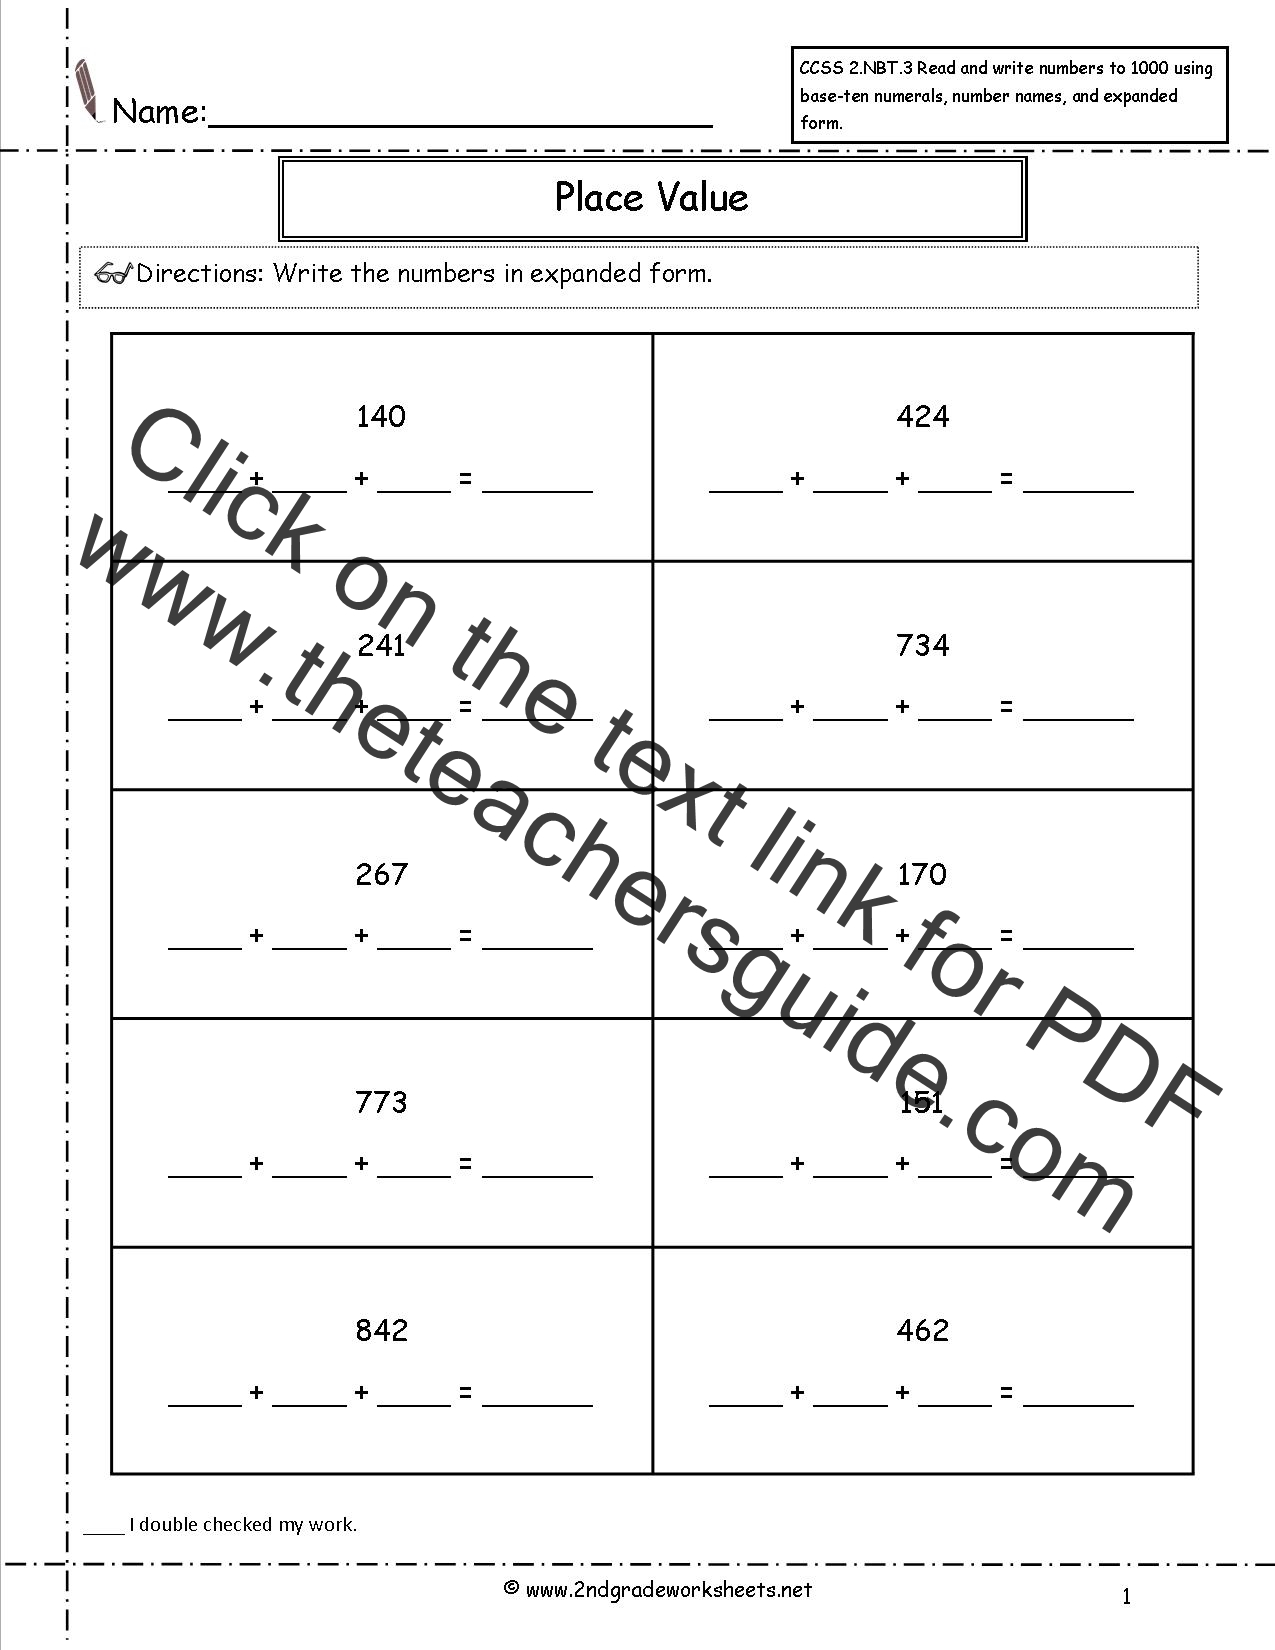 Base 10 Blocks Worksheets Images